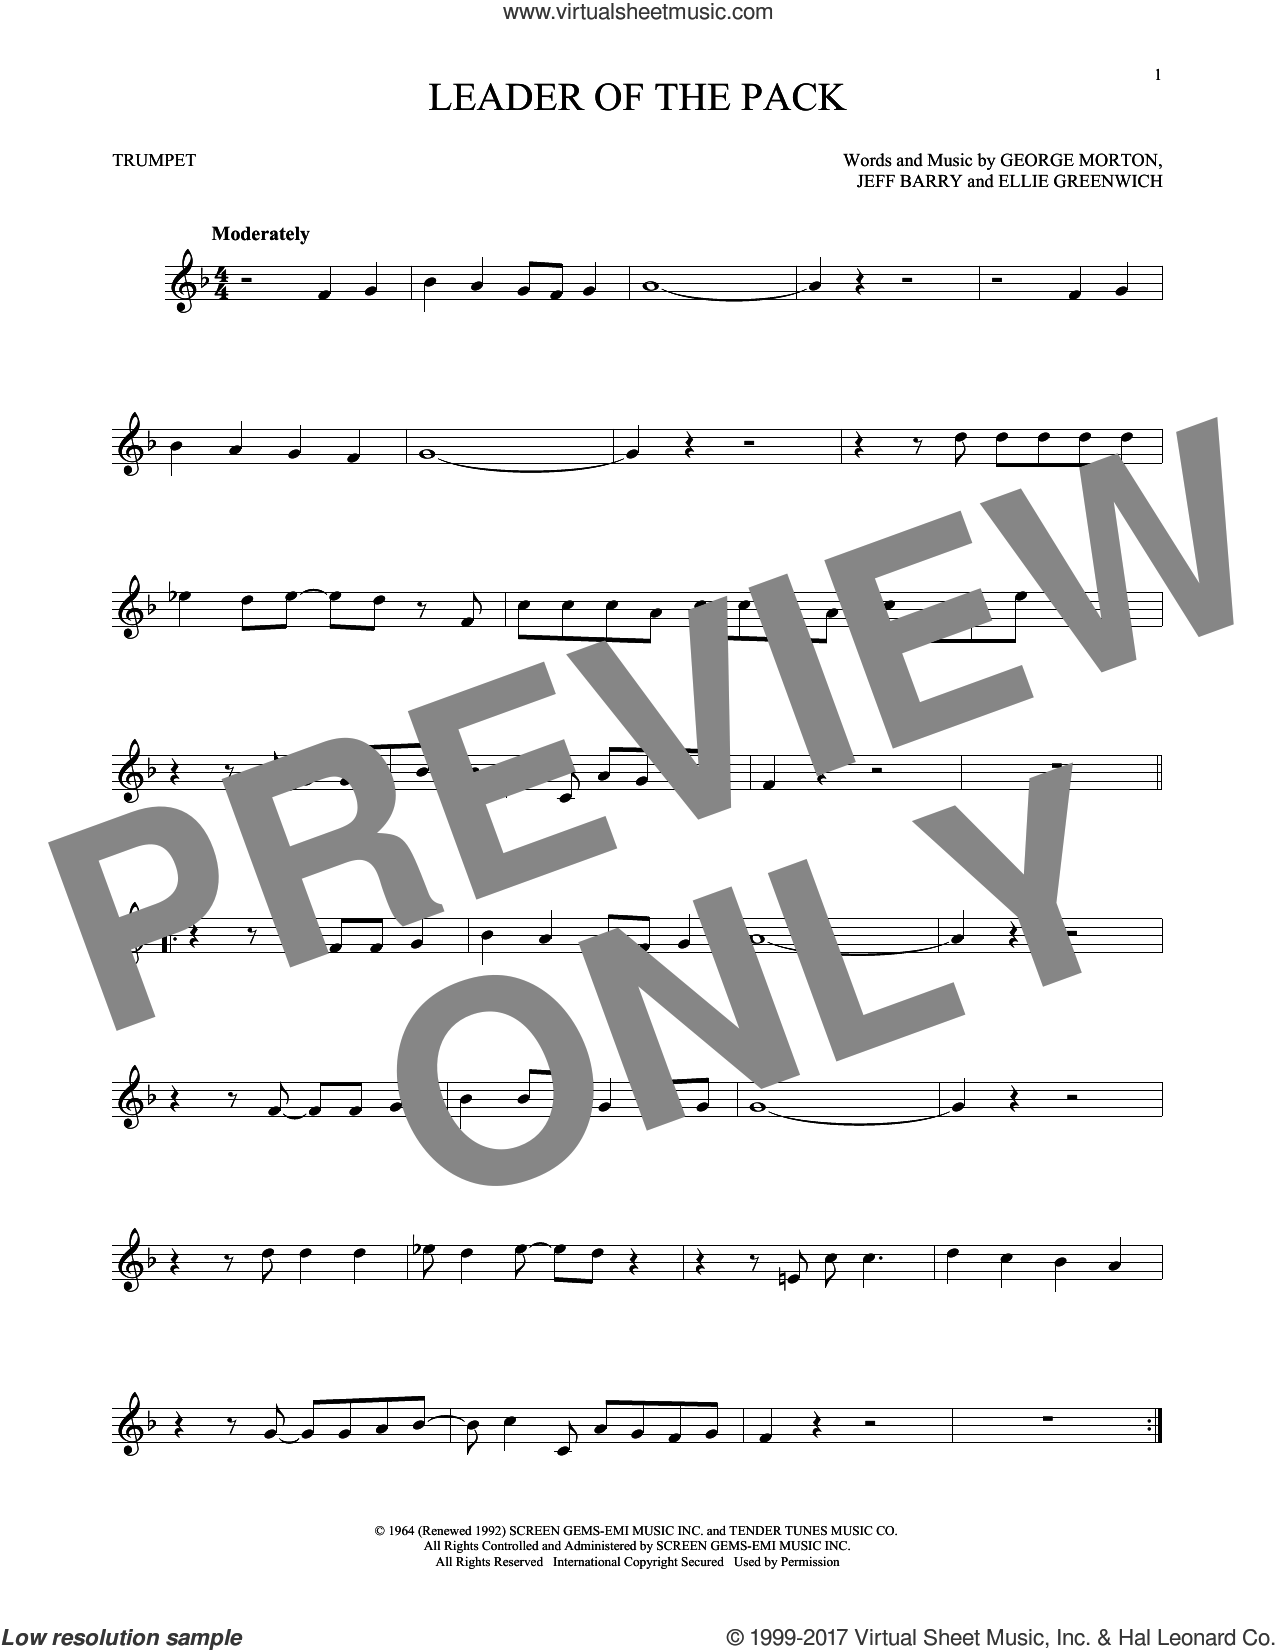 Leader Of The Pack sheet music for trumpet solo by The Shangri-Las, Ellie Greenwich and Jeff Barry, intermediate trumpet. Score Image Preview.